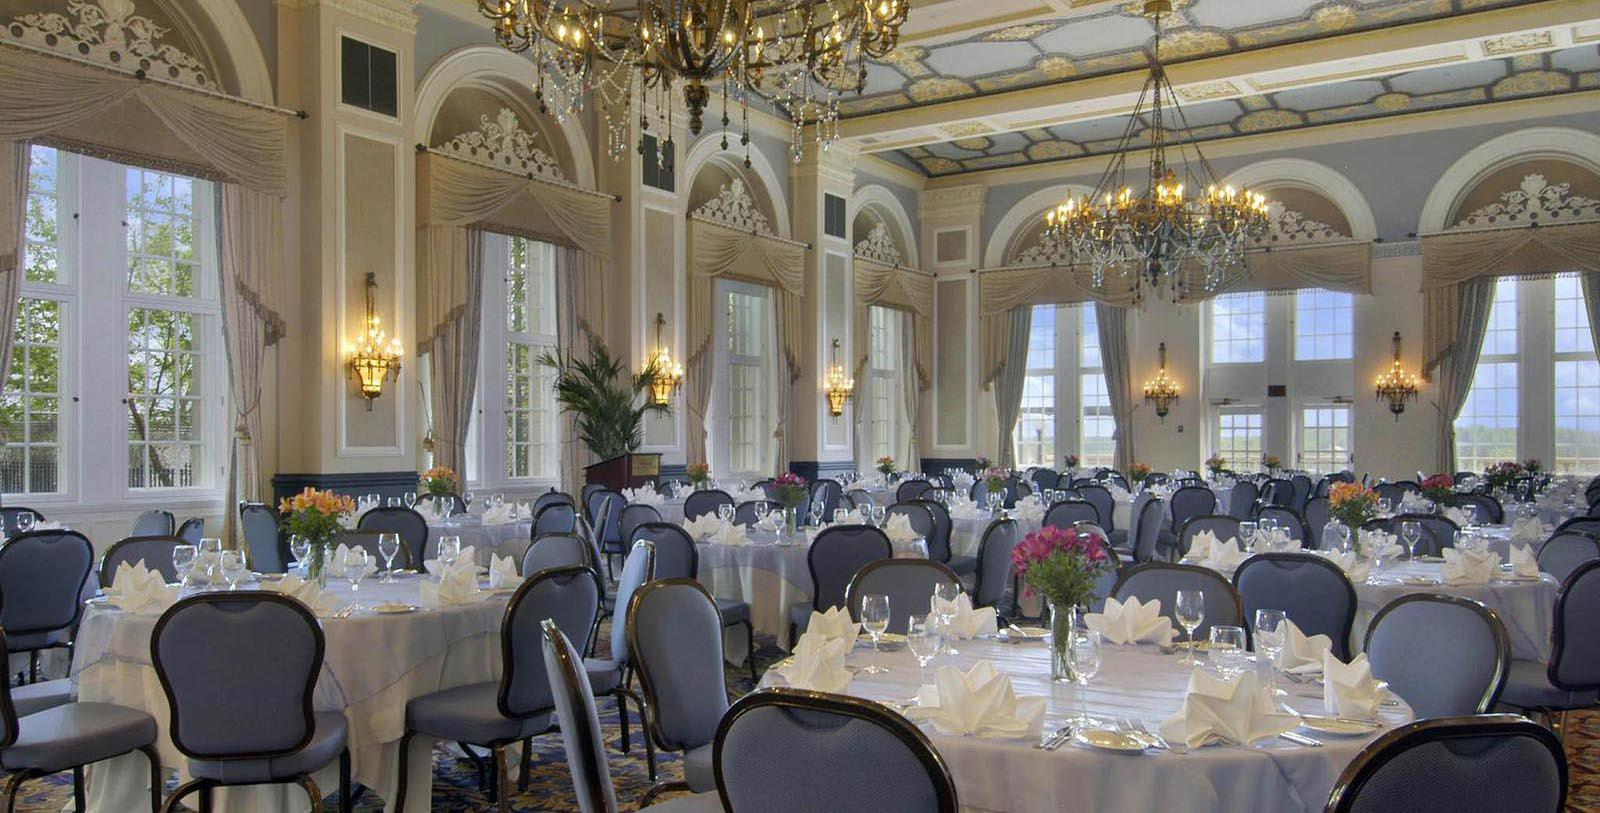 Image of ballroom set up for special event Fairmont Hotel Macdonald, 1915, Member of Historic Hotels Worldwide, in Edmonton, Canada, Experience